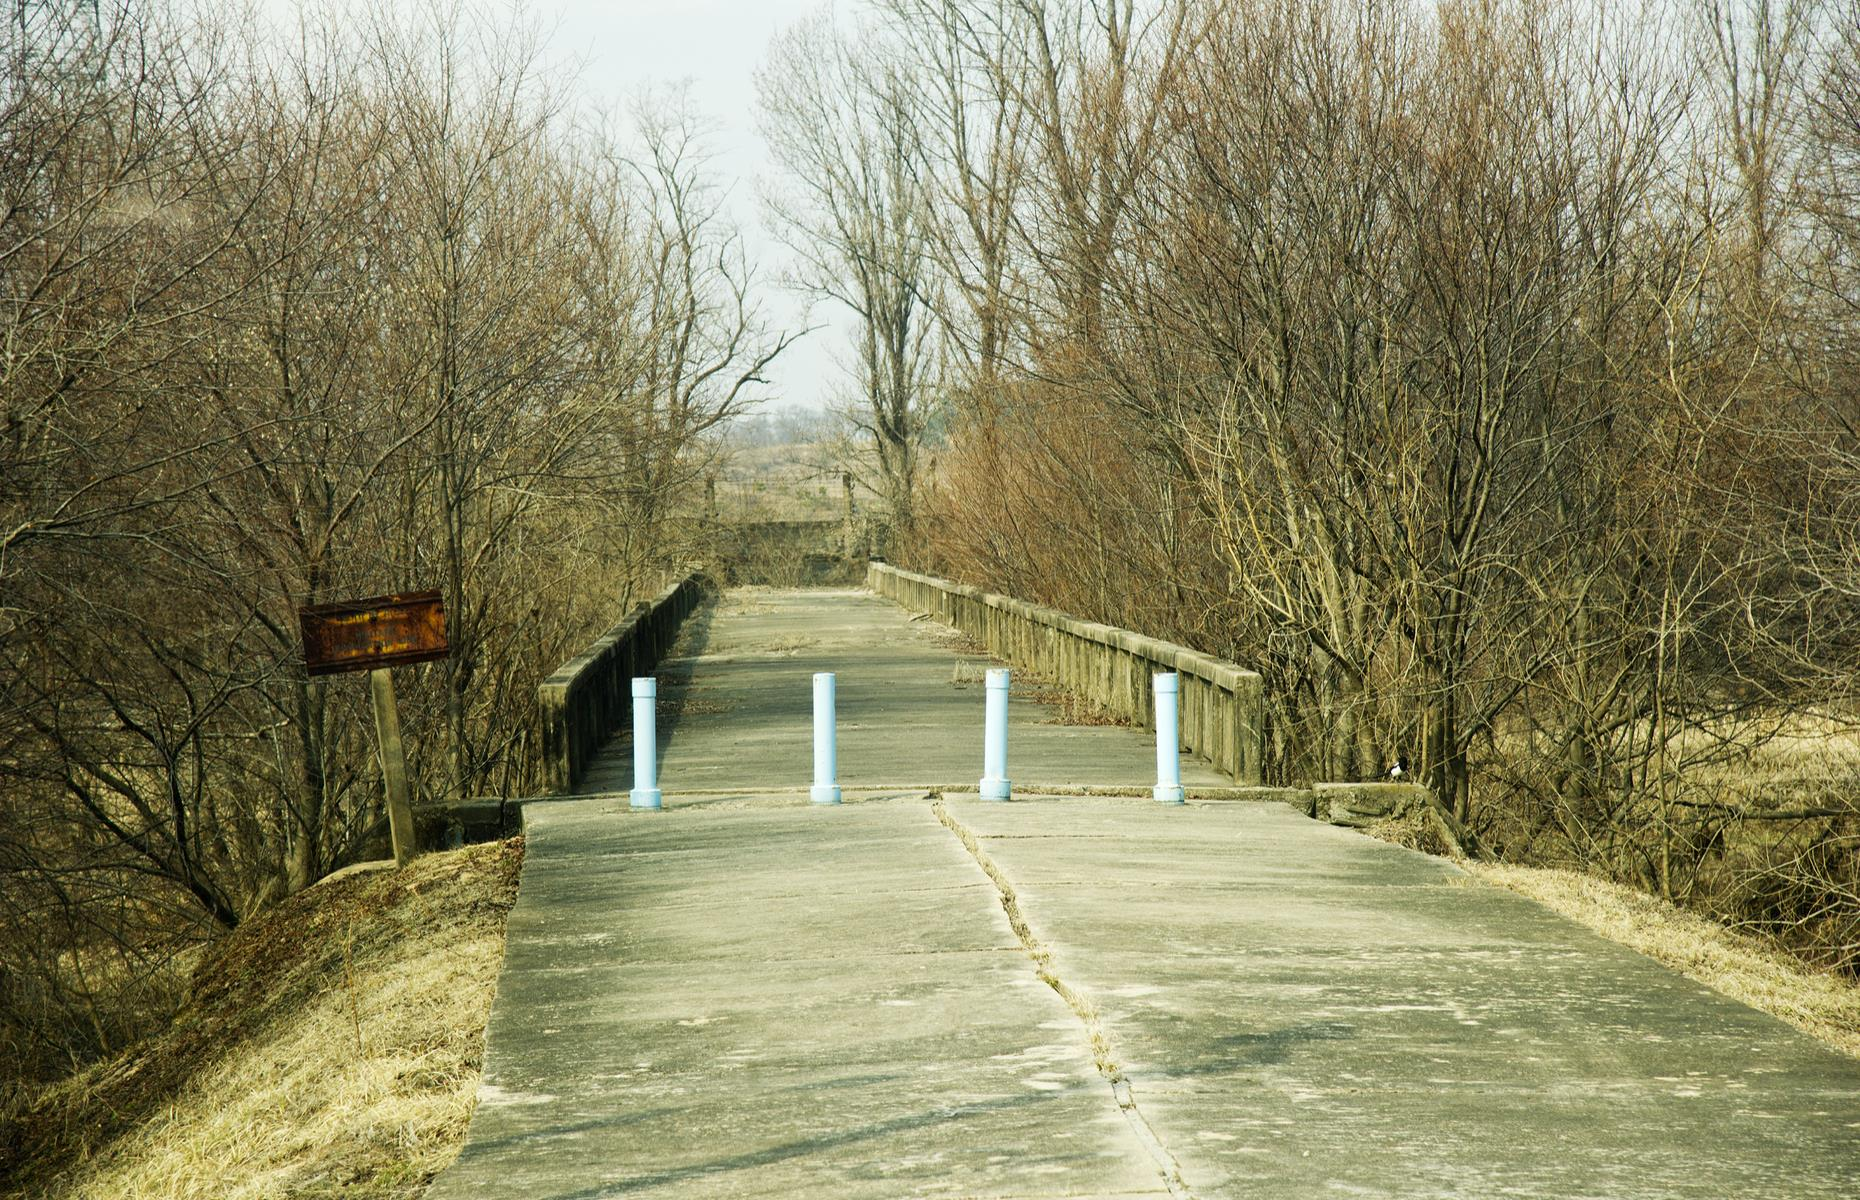 "Slide 6 of 51: This bridge in the DMZ has been untouched for decades and was used for prisoner exchanges until 1968. Dubbed the ""Bridge of No Return"", war prisoners were given an ultimatum to either remain in the country of captivity or cross the bridge to return to their homeland. Once across the bridge, however, there was no return allowed."